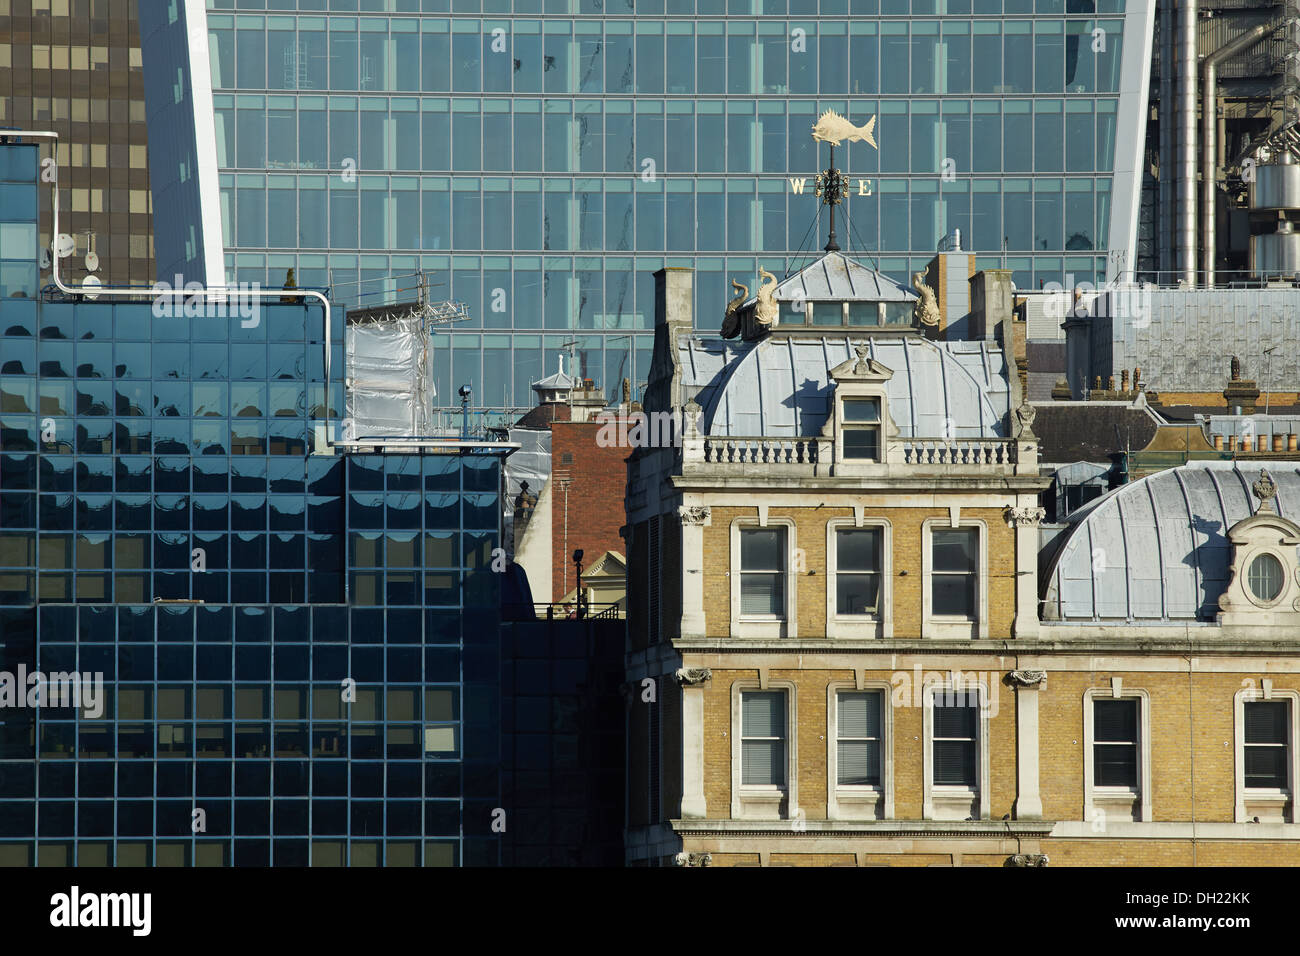 The old Billingsgate building from the south bank of the river Thames with city buildings in the background. - Stock Image